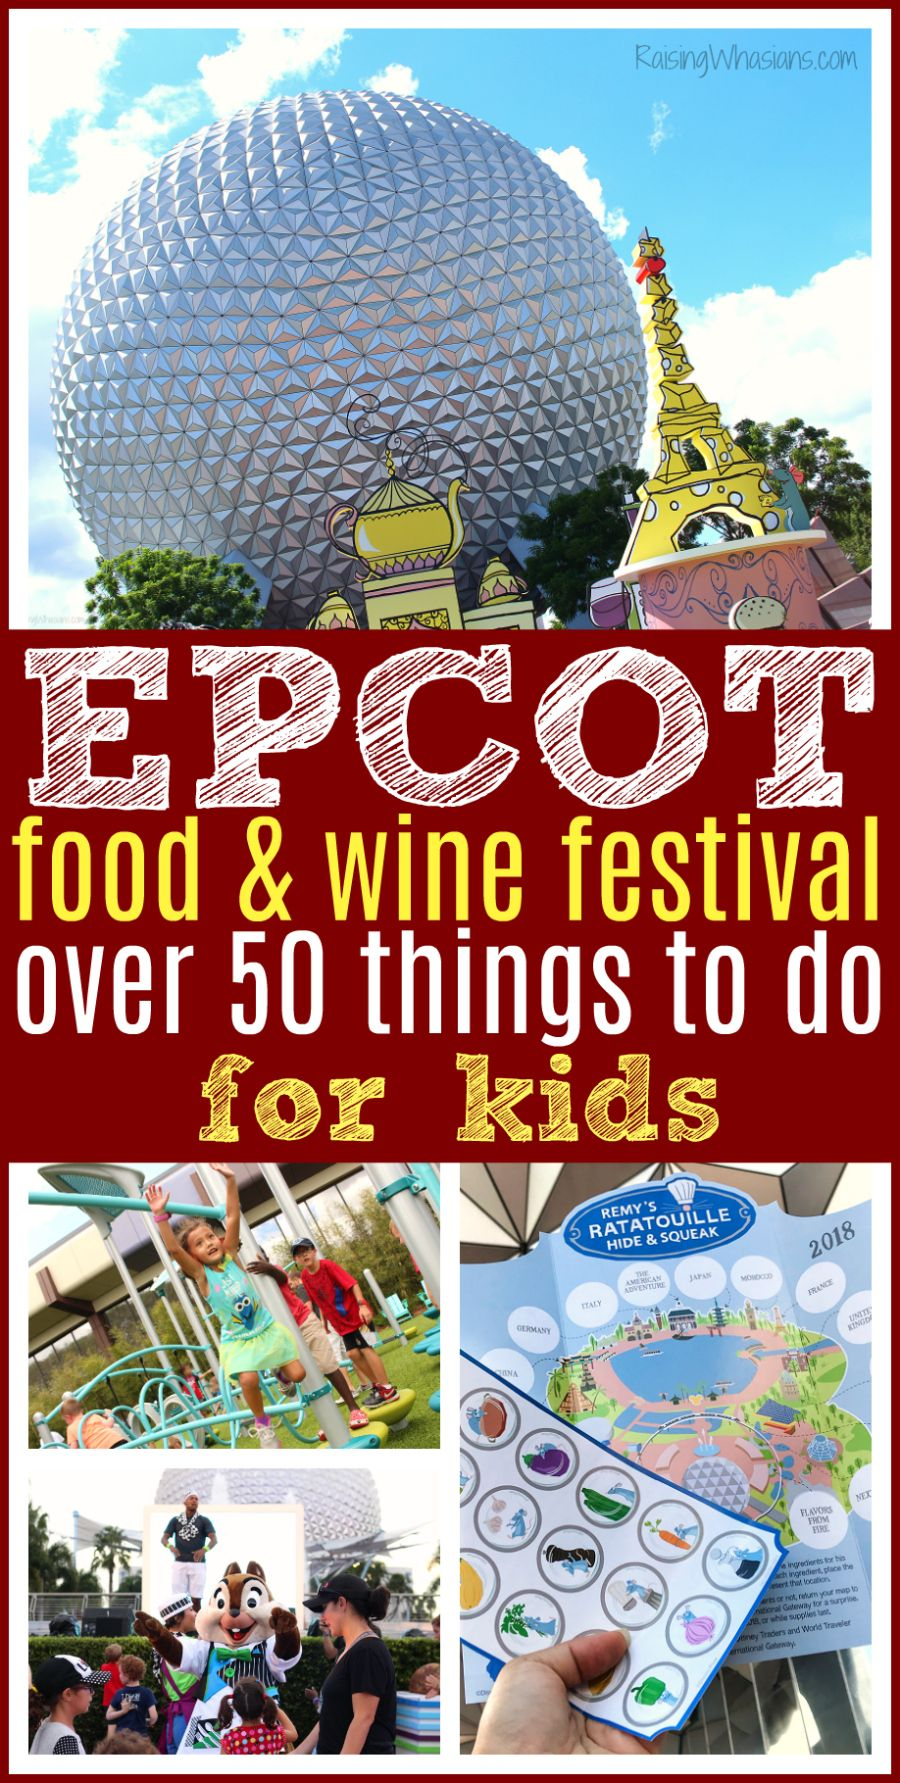 Over 50 Epcot Food And Wine Festival Things To Do For Kids Raising Whasians Disney World Tips And Tricks Epcot Food Epcot